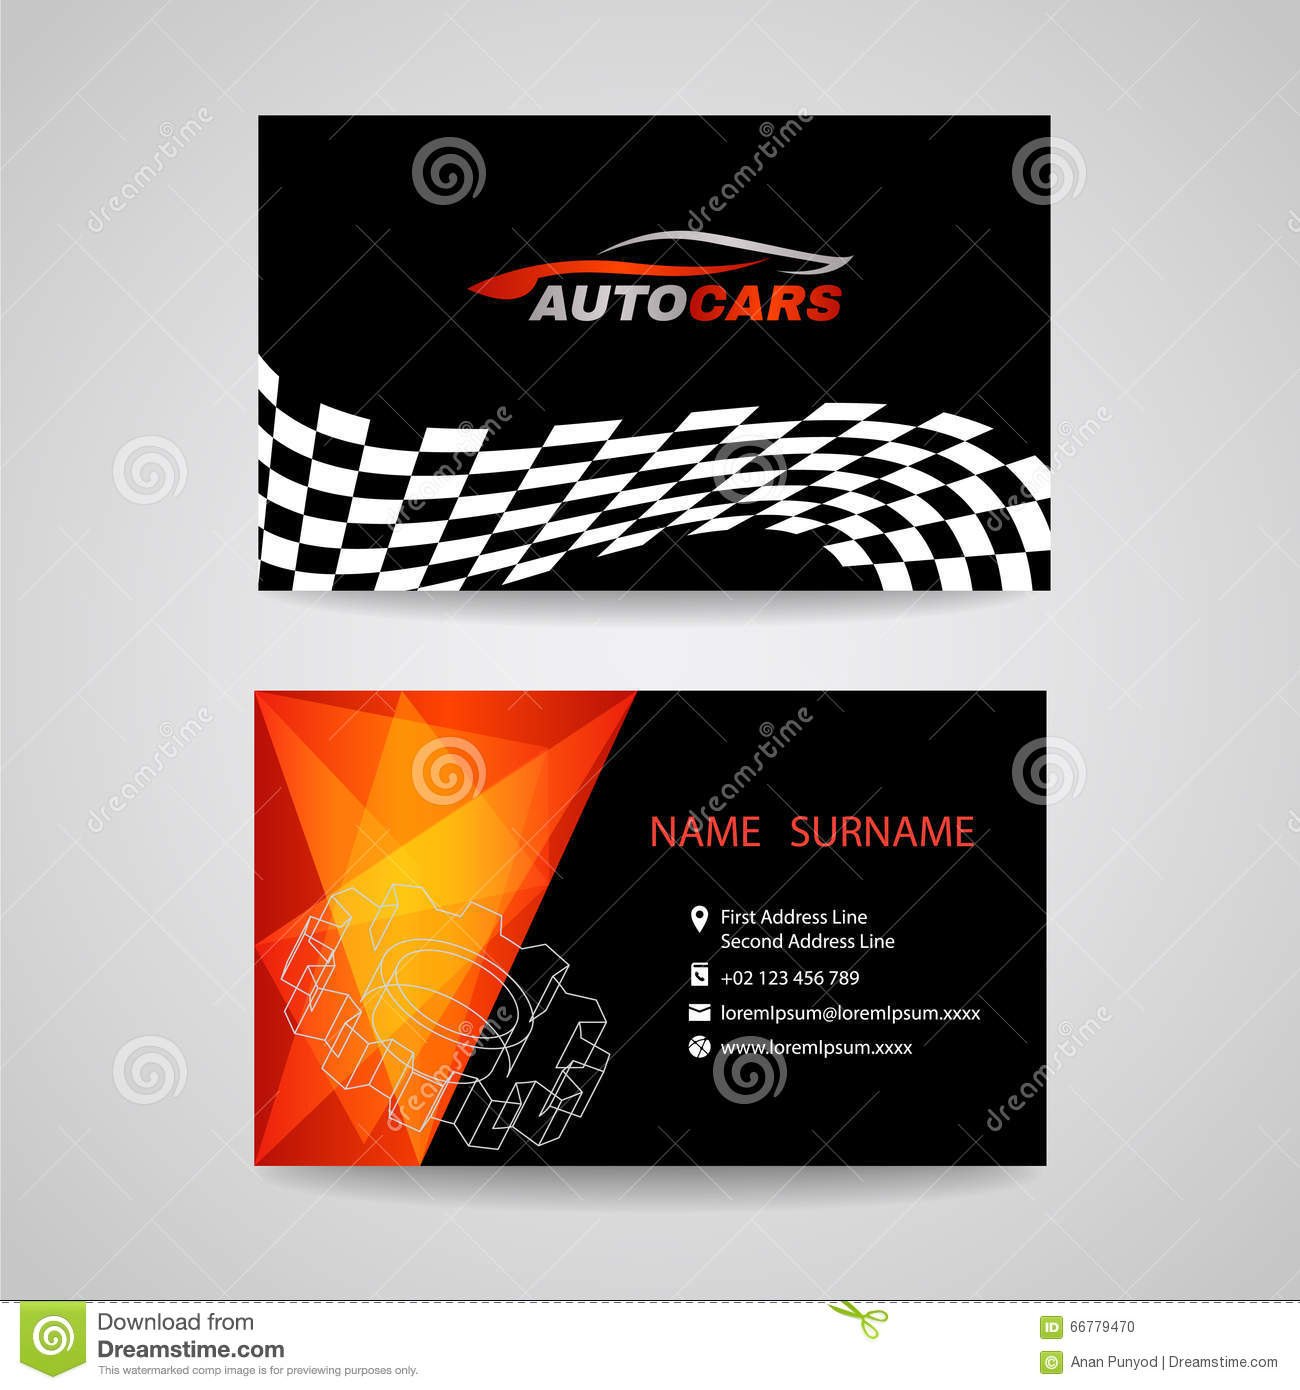 Famous Car Wash Business Cards Contemporary - Business Card Ideas ...